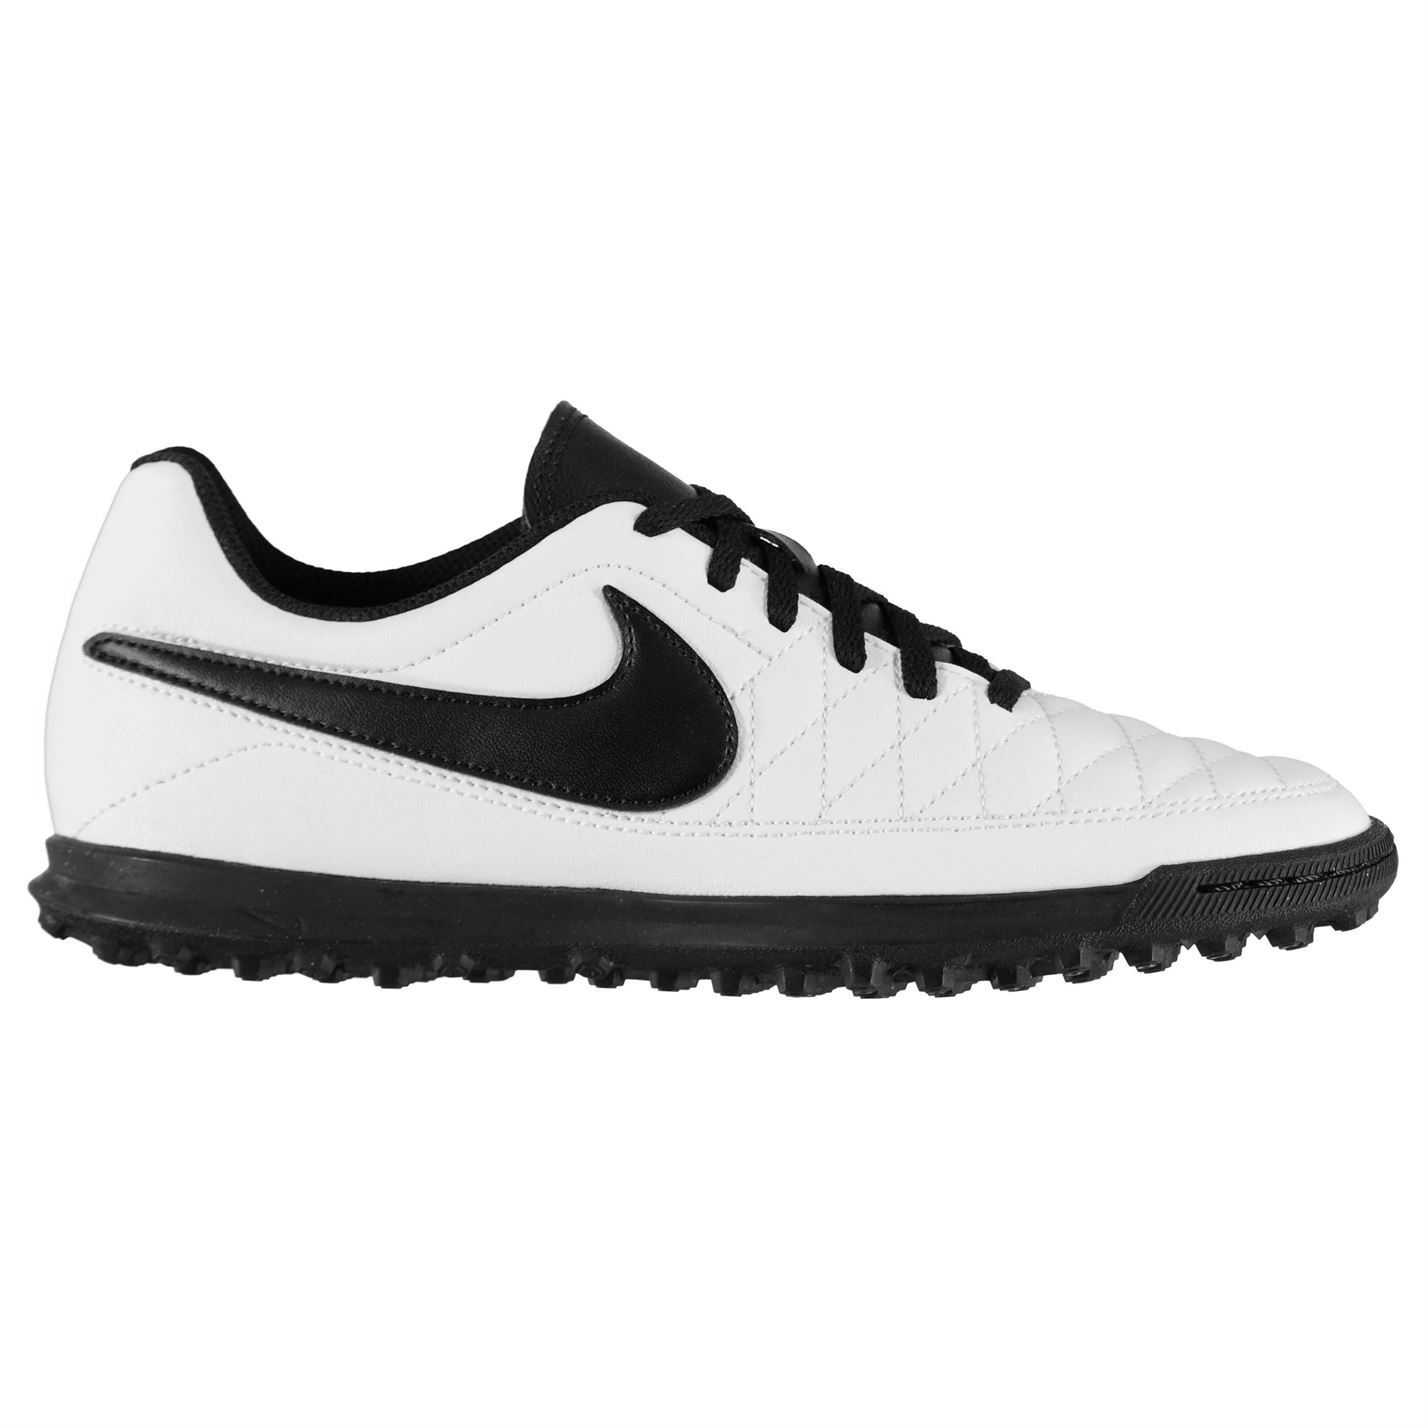 Nike-majestry-Astro-Turf-Football-Baskets-Pour-Homme-Football-Baskets-Chaussures miniature 14